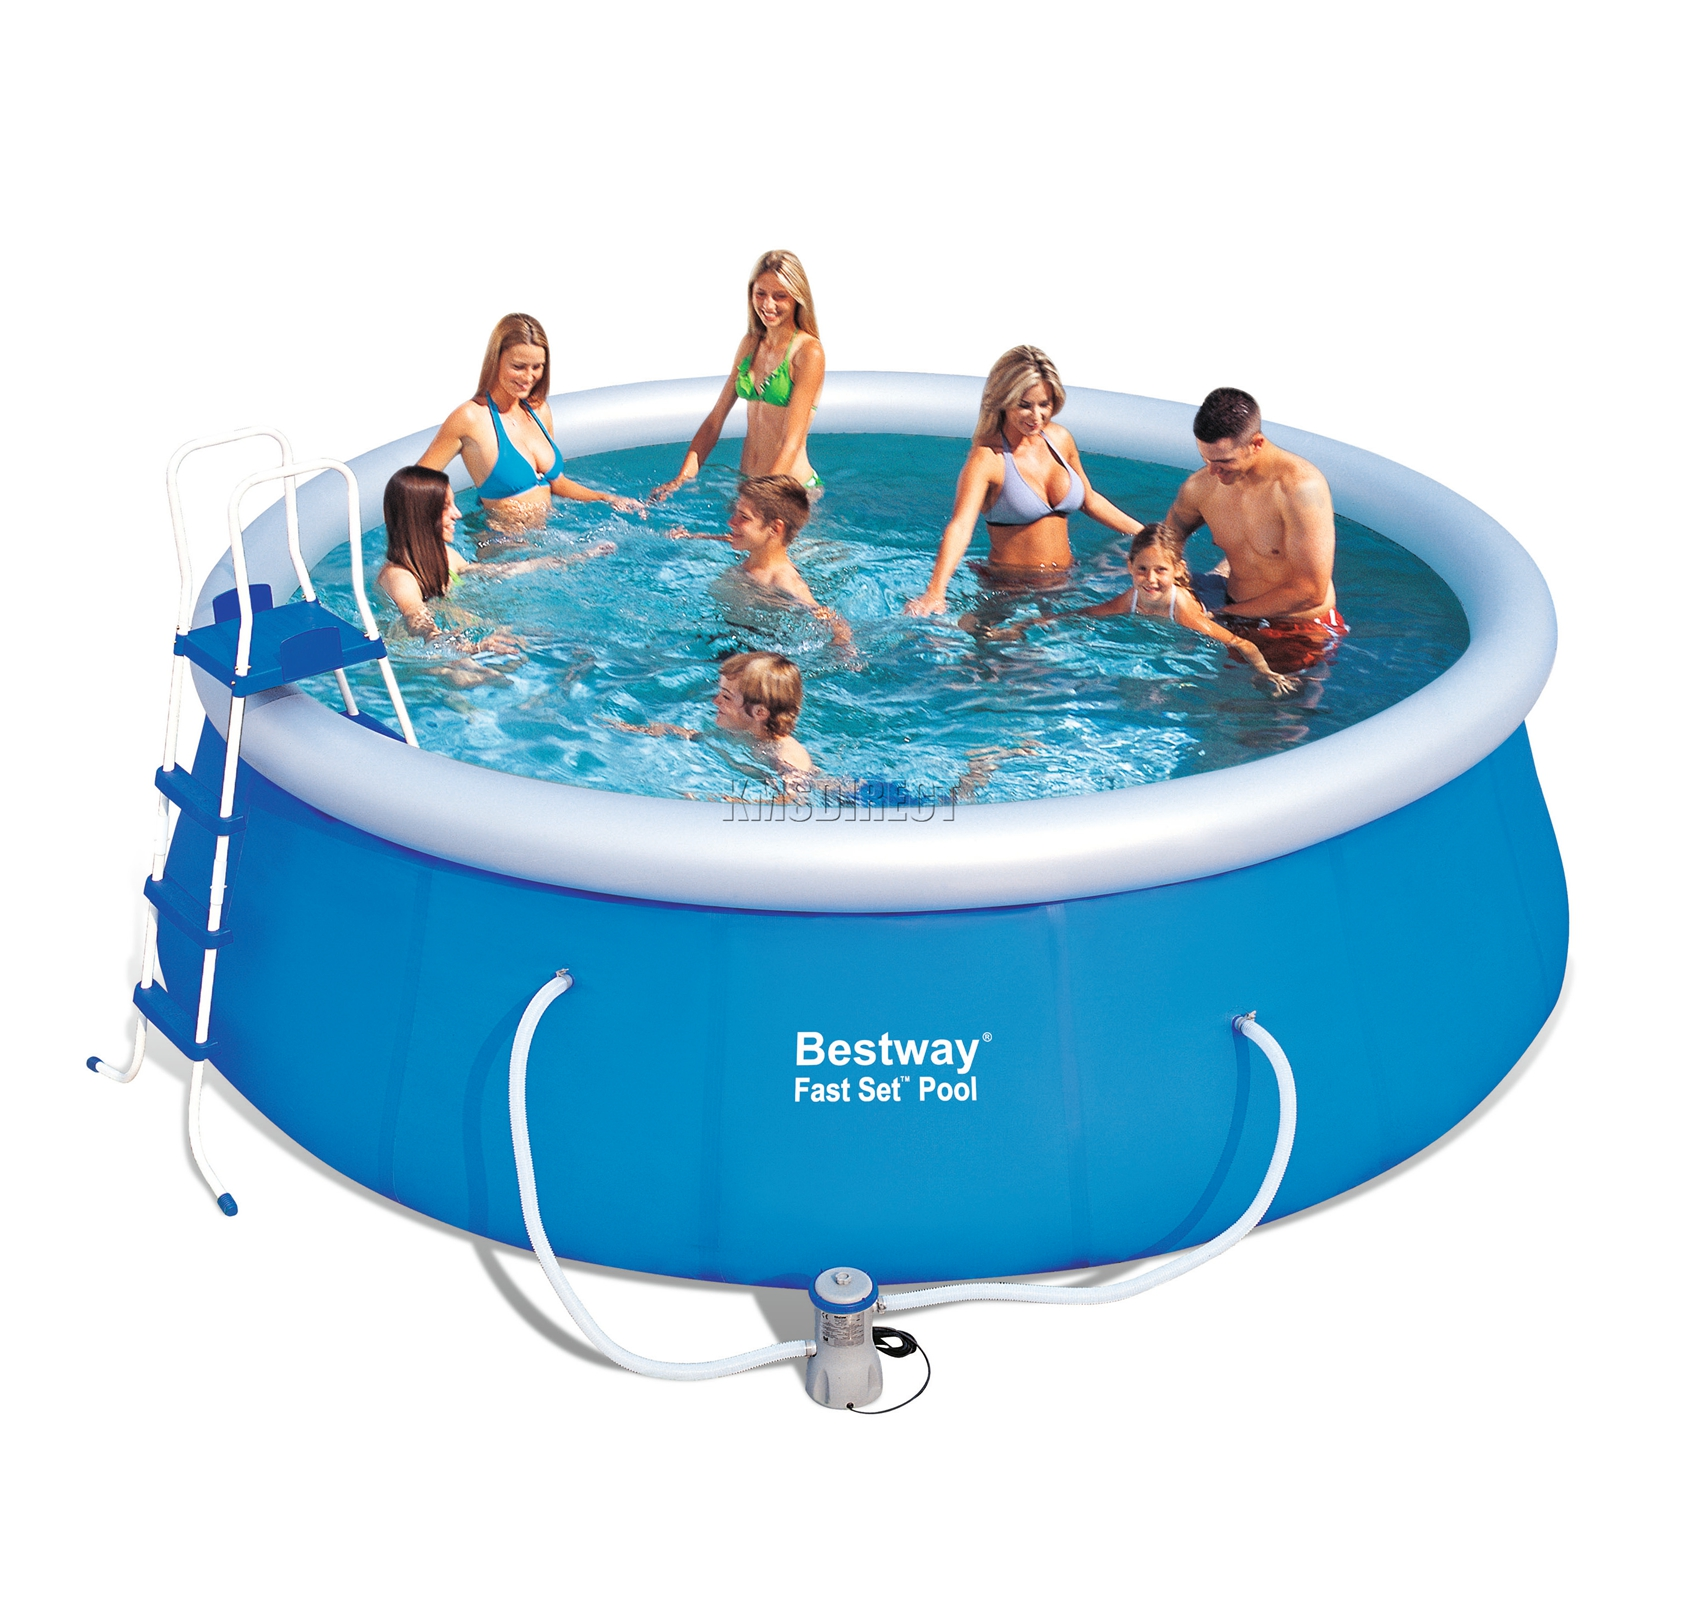 Bestway Fast Set Swimming Pool Round Inflatable 15ft X 48inch With Filter Pump Ebay